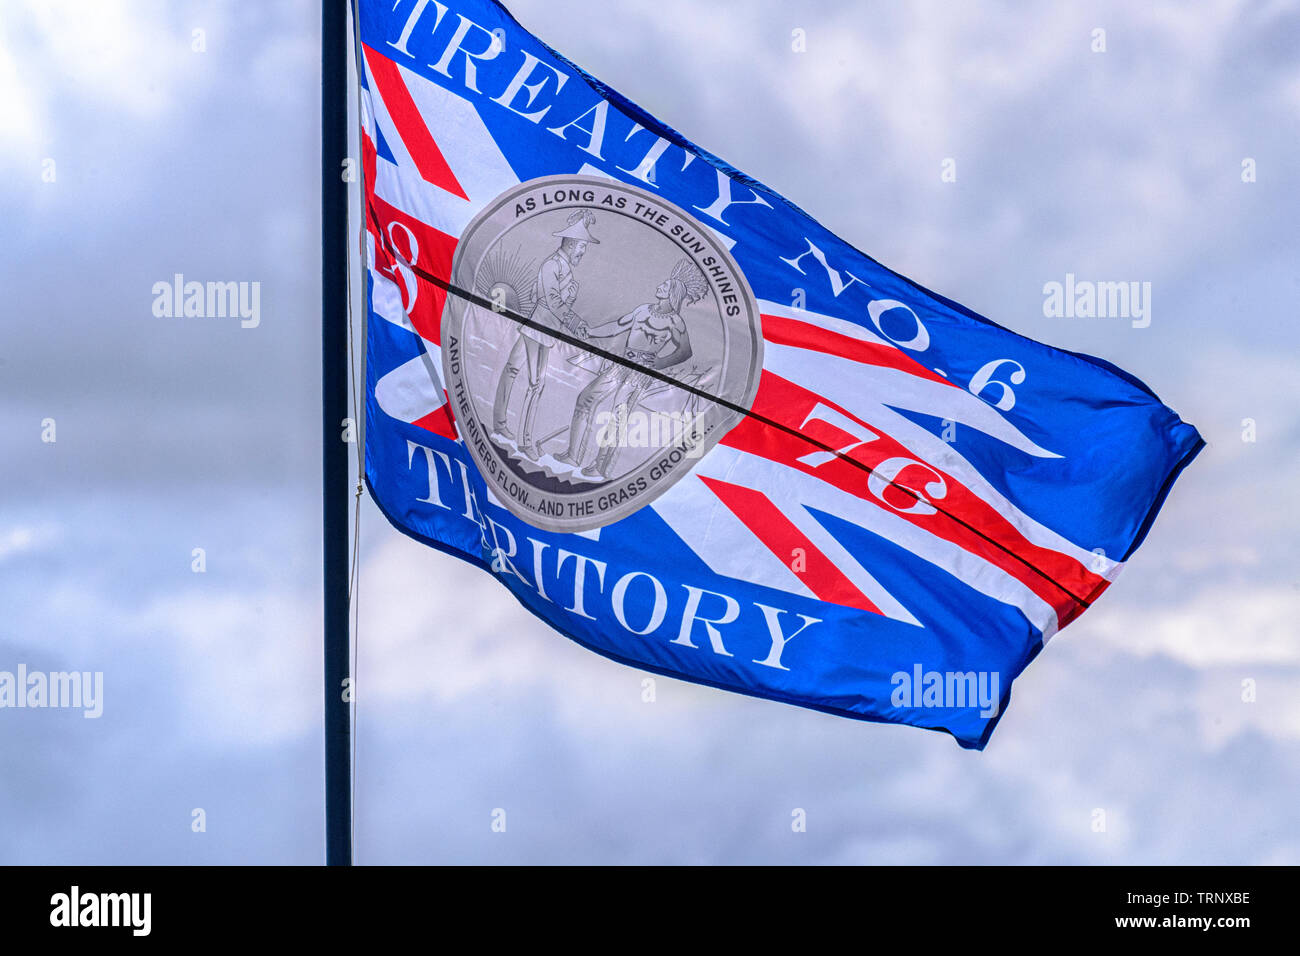 treaty-6-flag-flying-in-the-first-nations-cree-community-of-maskwacis-alberta-canada-TRNXBE.jpg